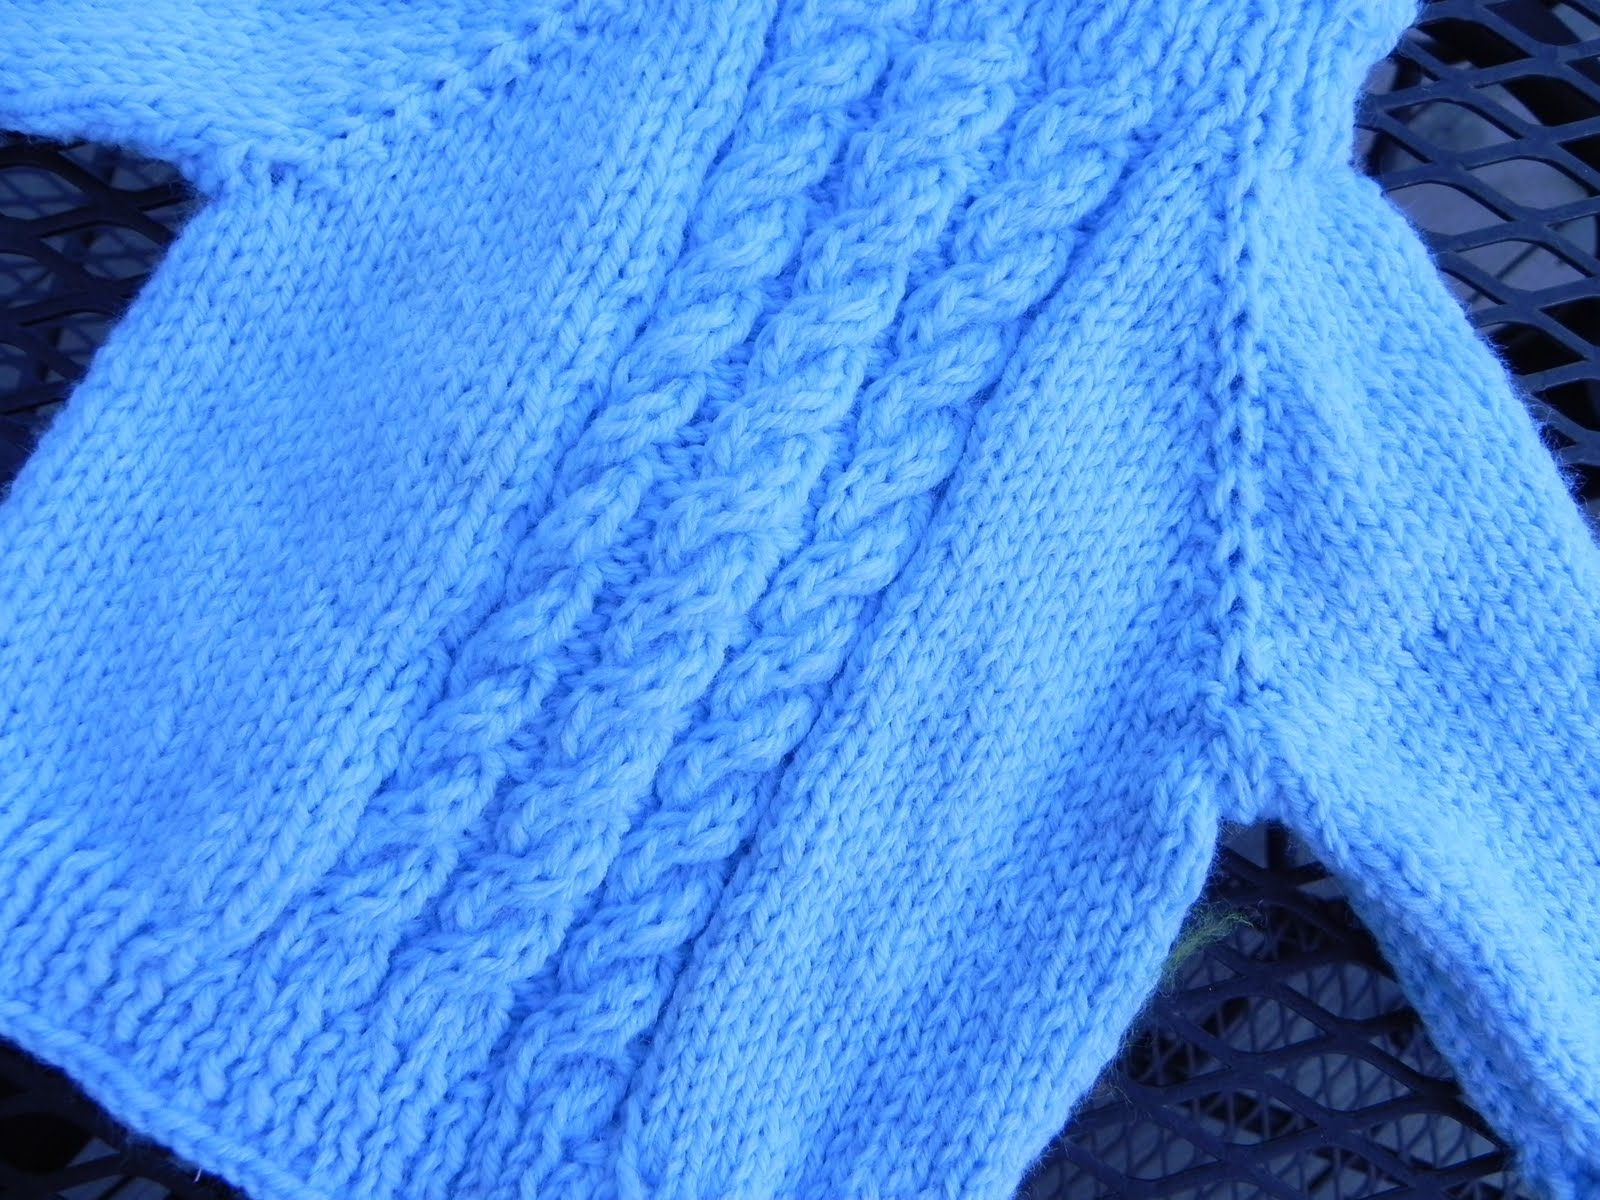 Knit Zilla: Poor Baby Sweater Pattern (Backzip Hooded Baby ...